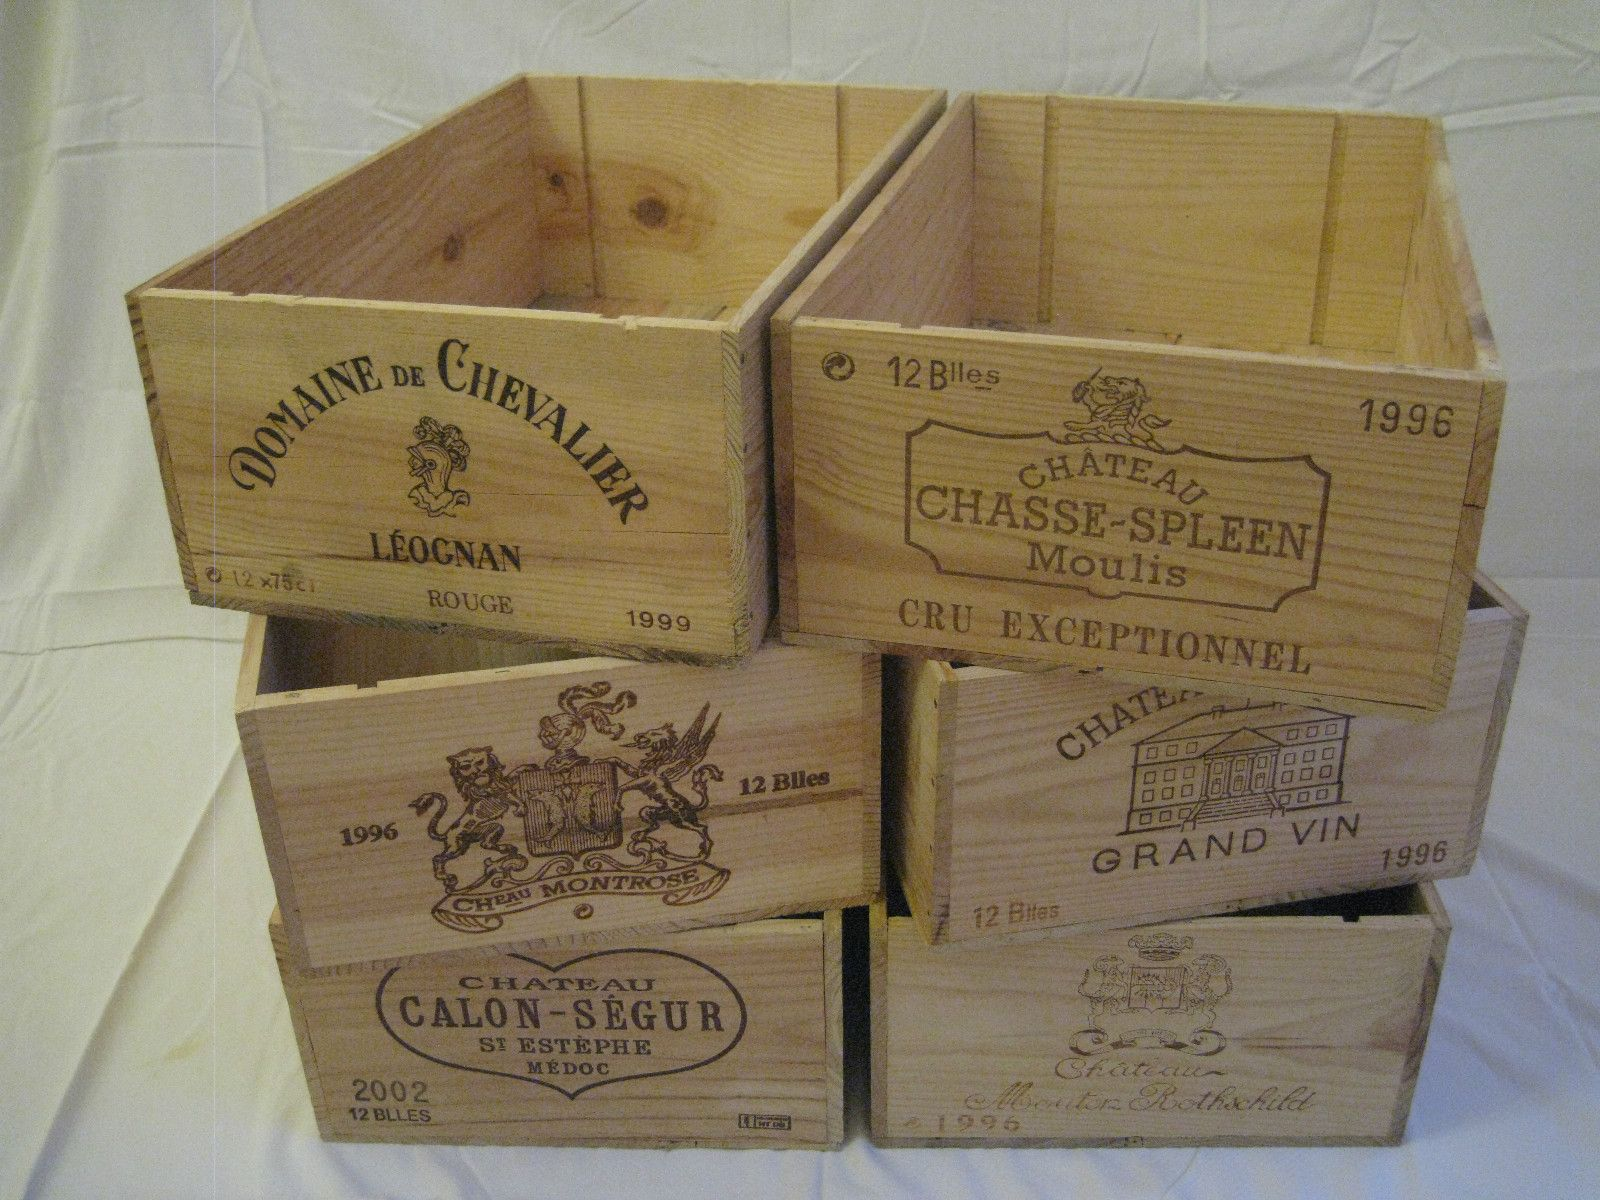 Wine Crates For Sale What I Really Need Them For Is